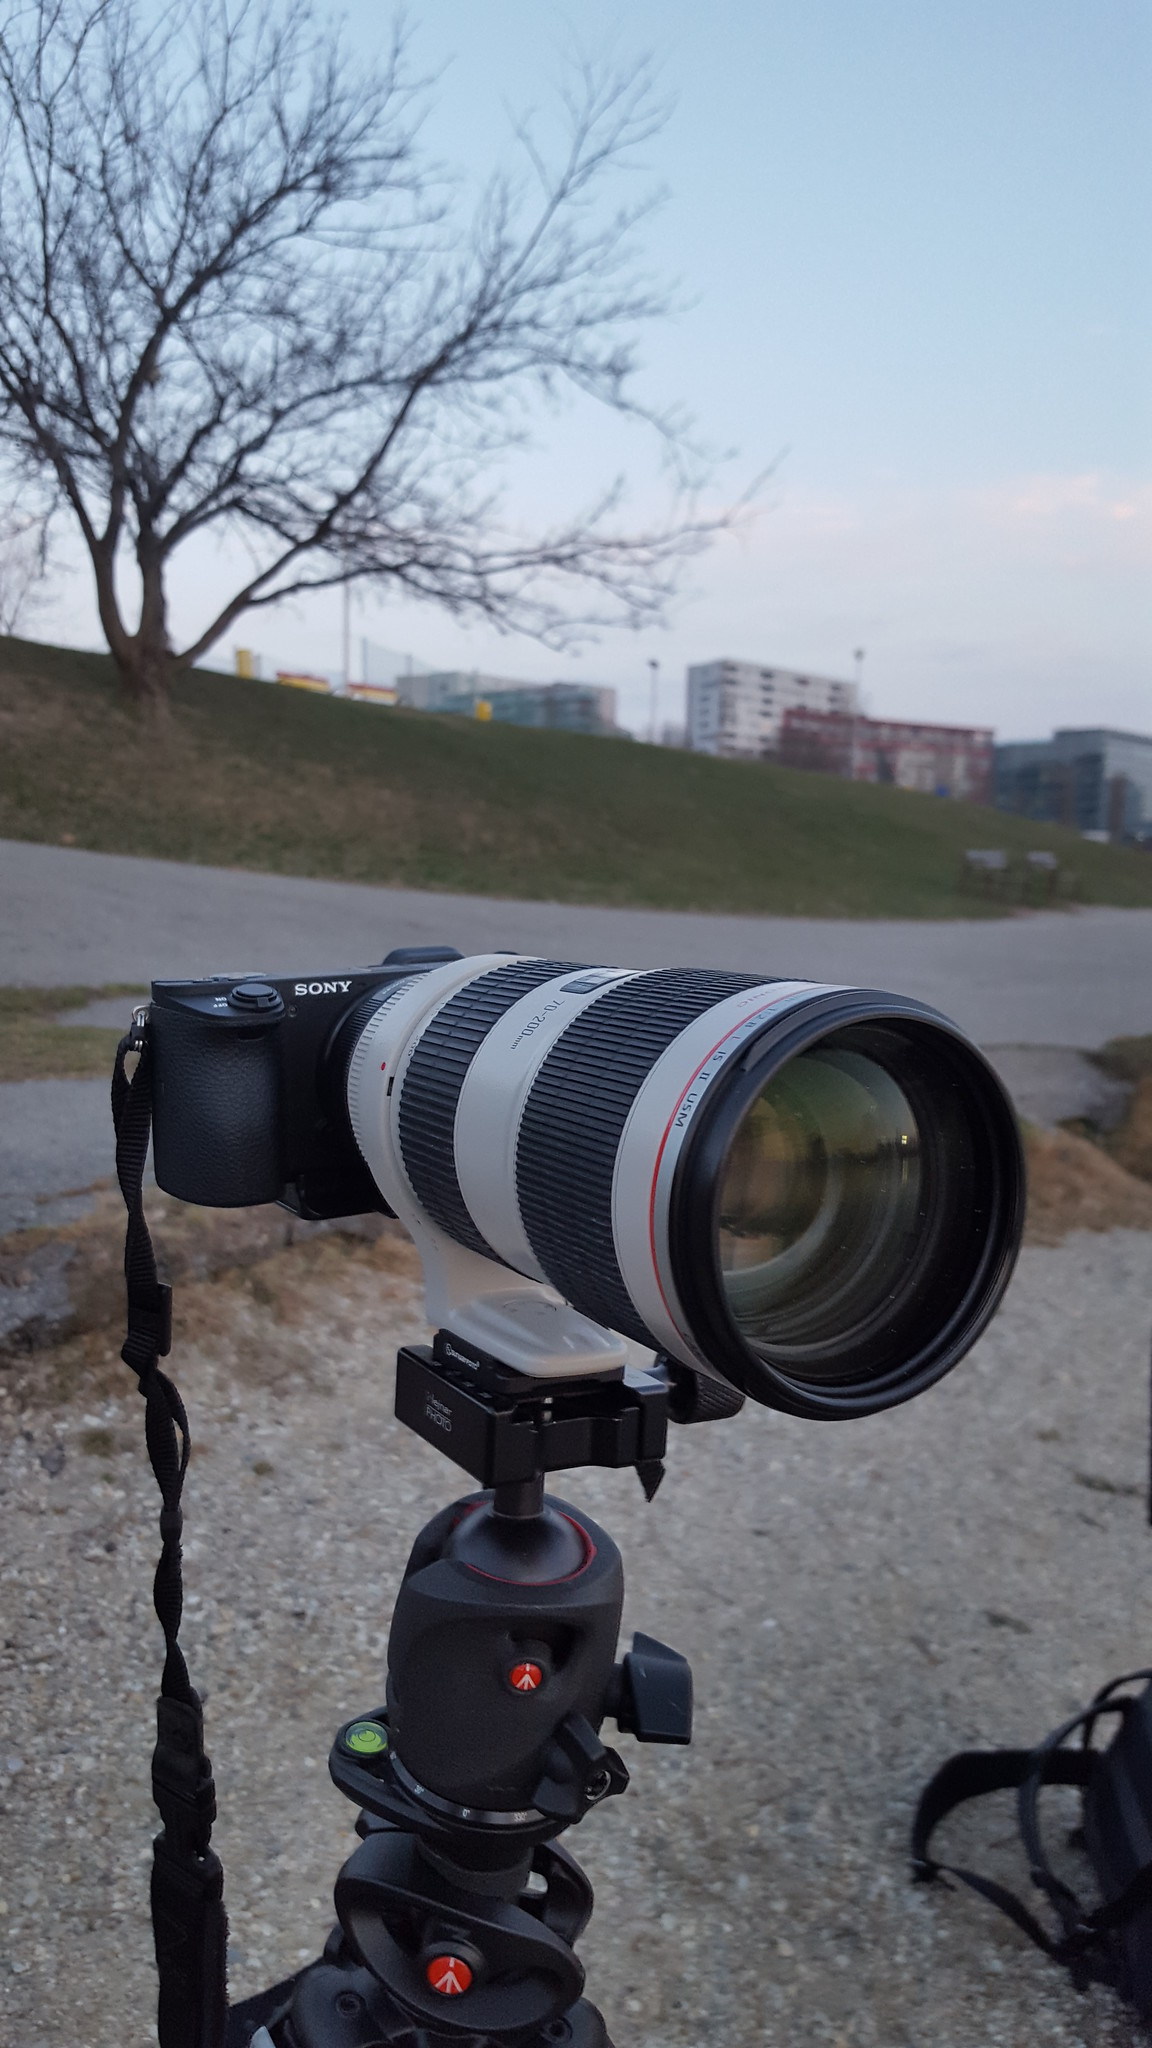 Manfrotto 055CXPRO4 review